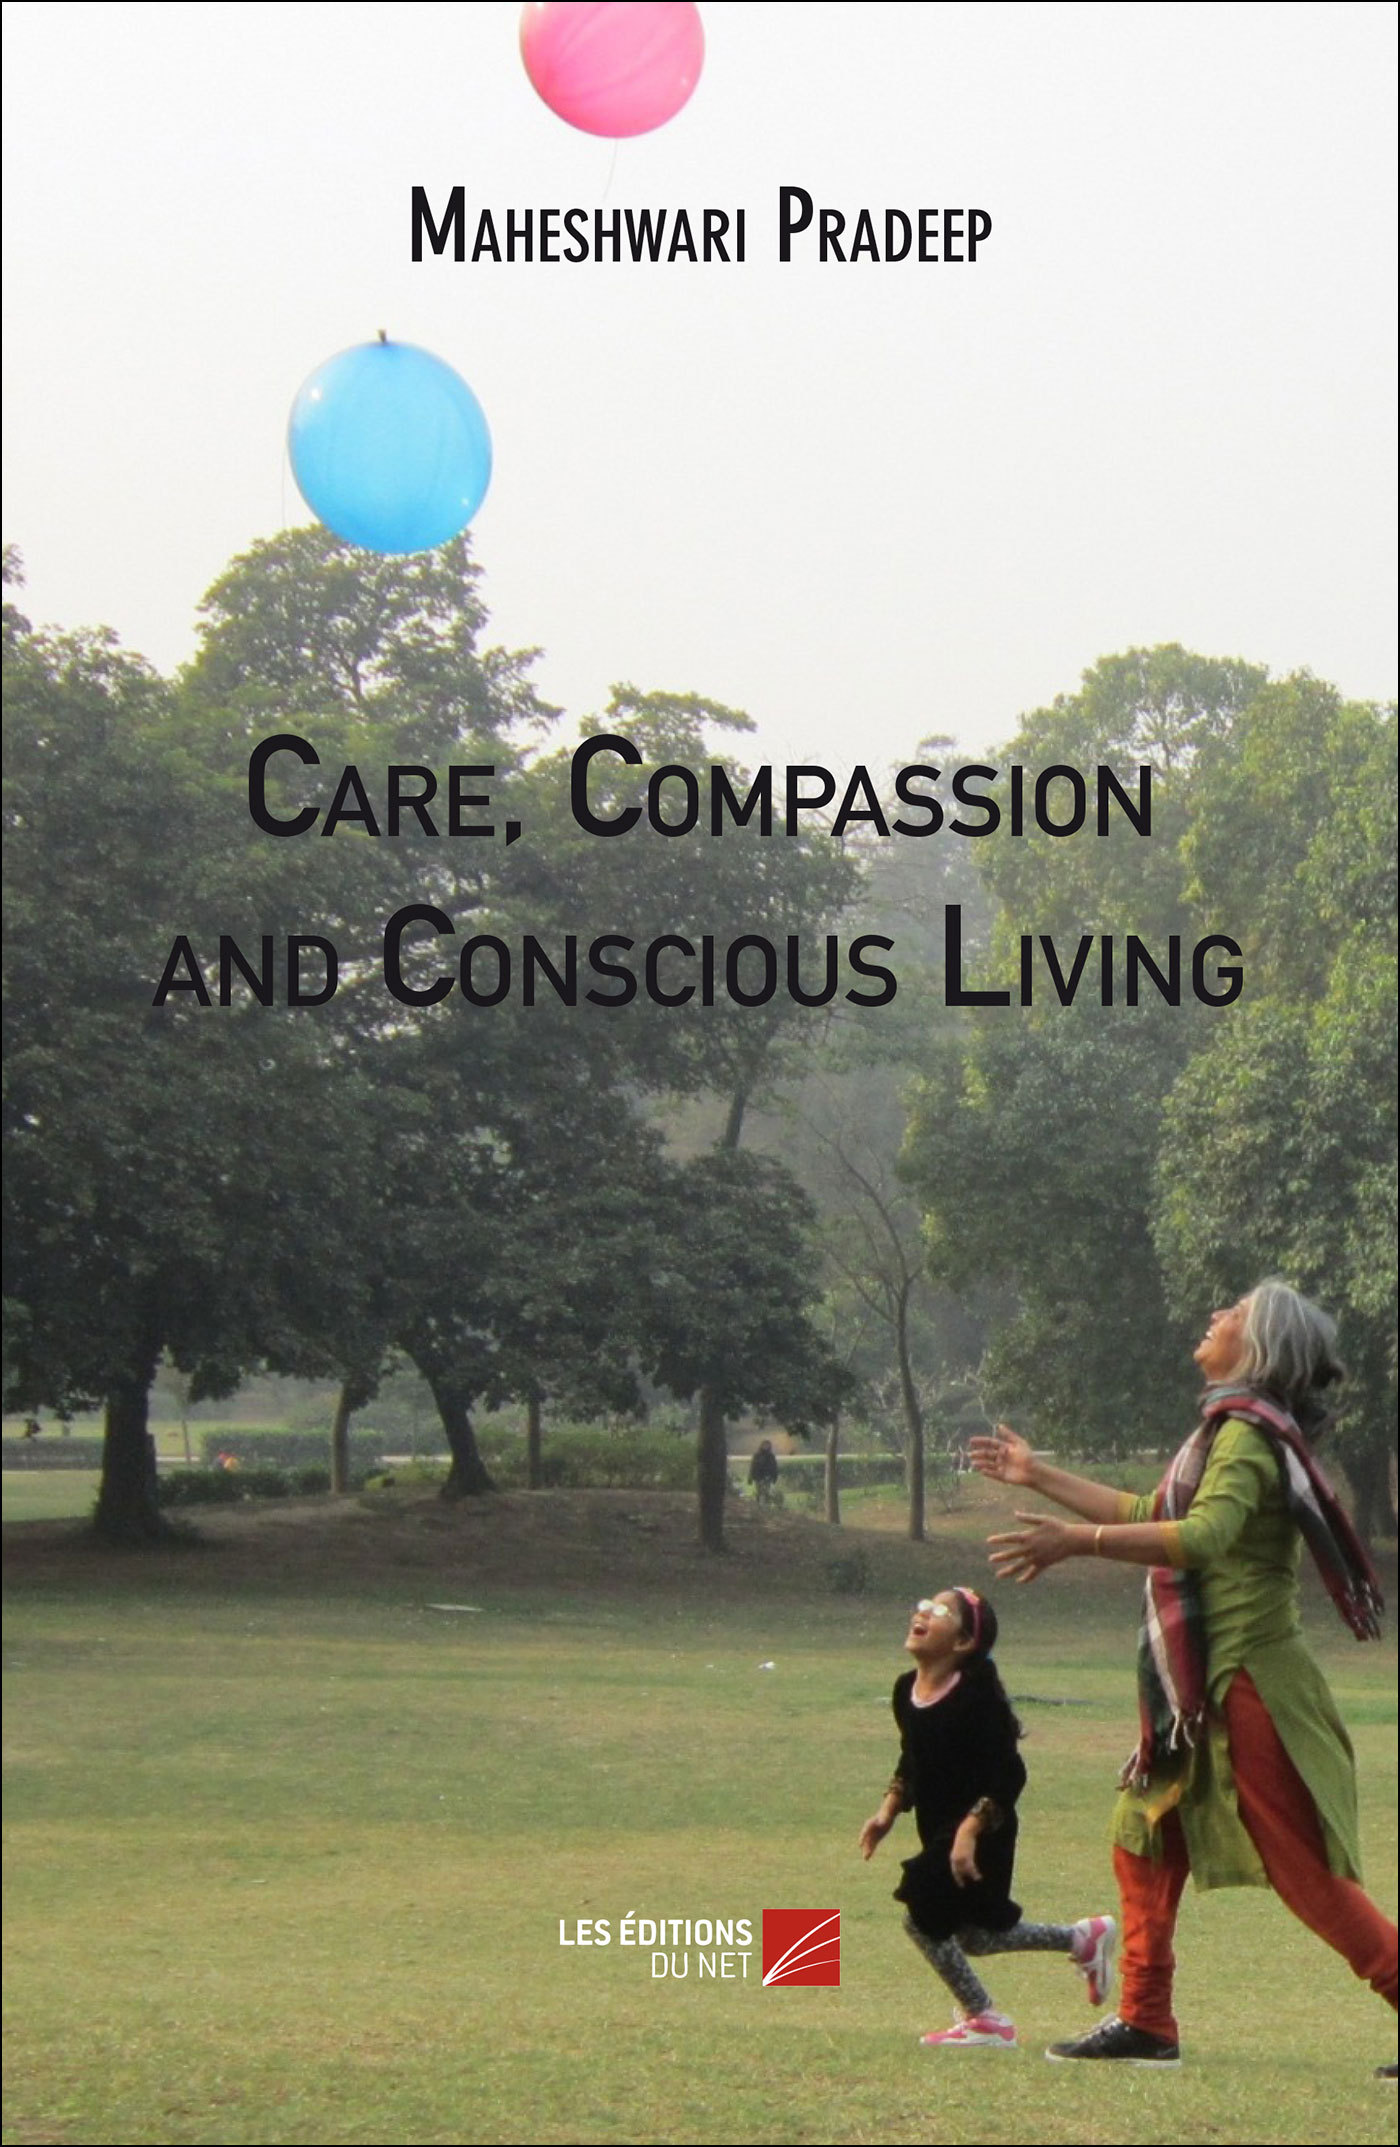 CARE, COMPASSION AND CONSCIOUS LIVING